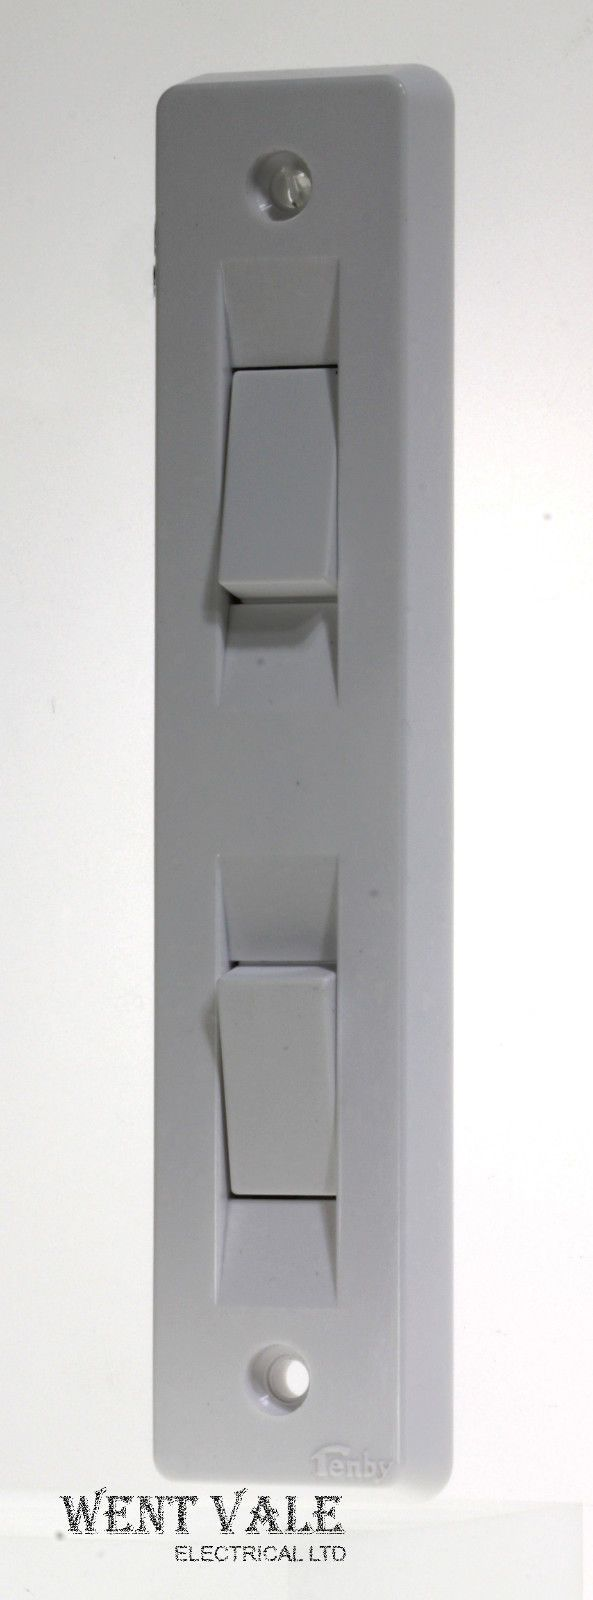 Tenby Glacier Standard - 7003 - 10ax 2 Gang 2 Way Architrave Switch Unused